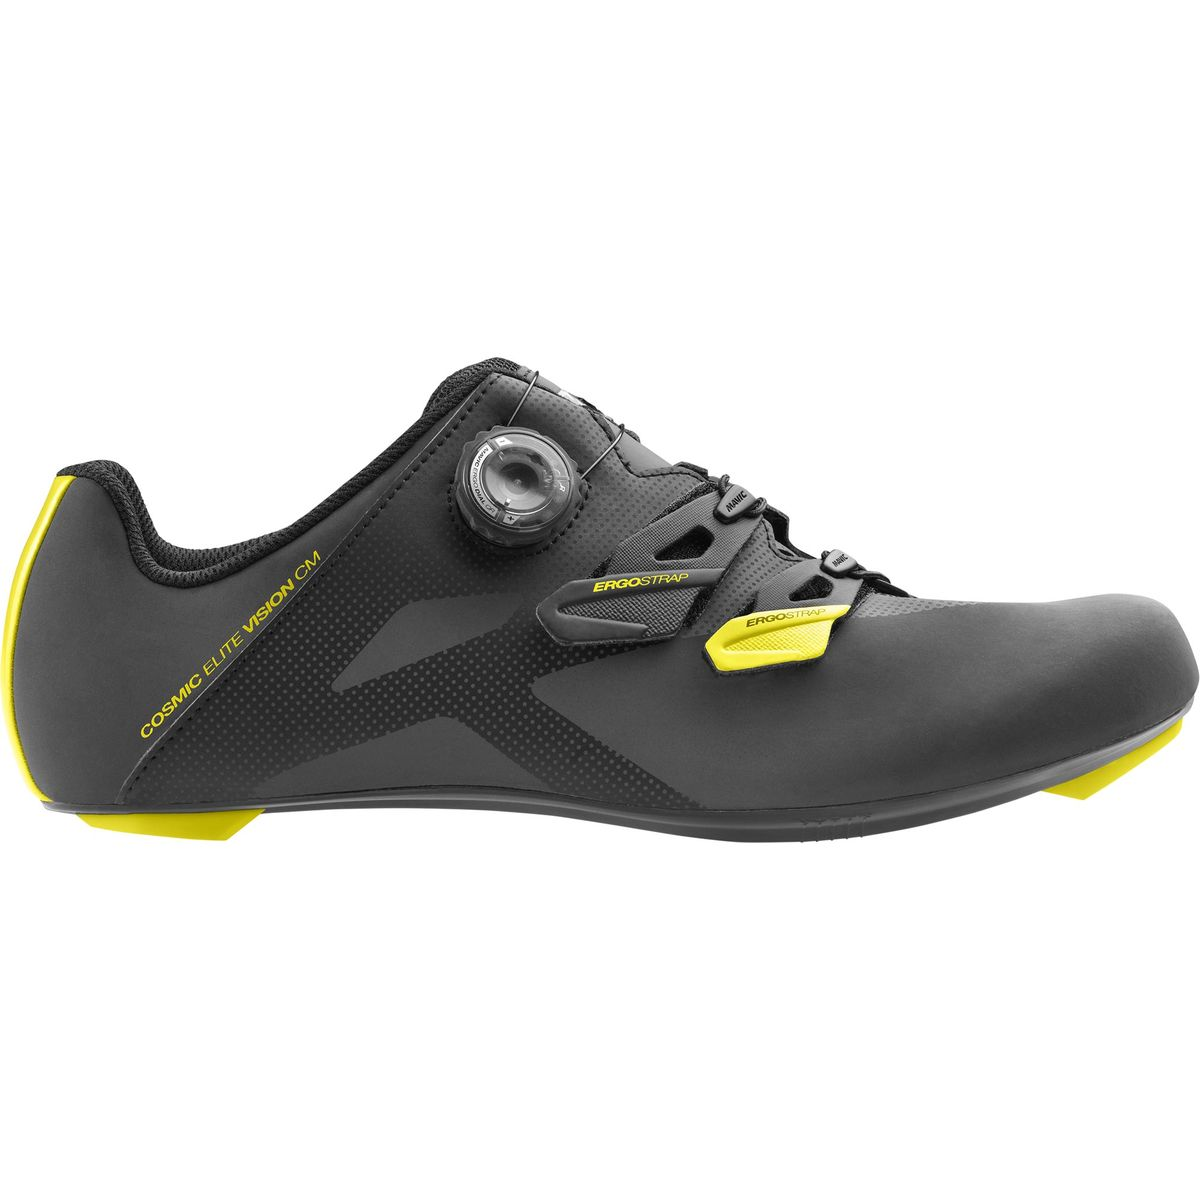 MAVIC COSMIC ELITE VISION CM road shoes | Shoes and overlays